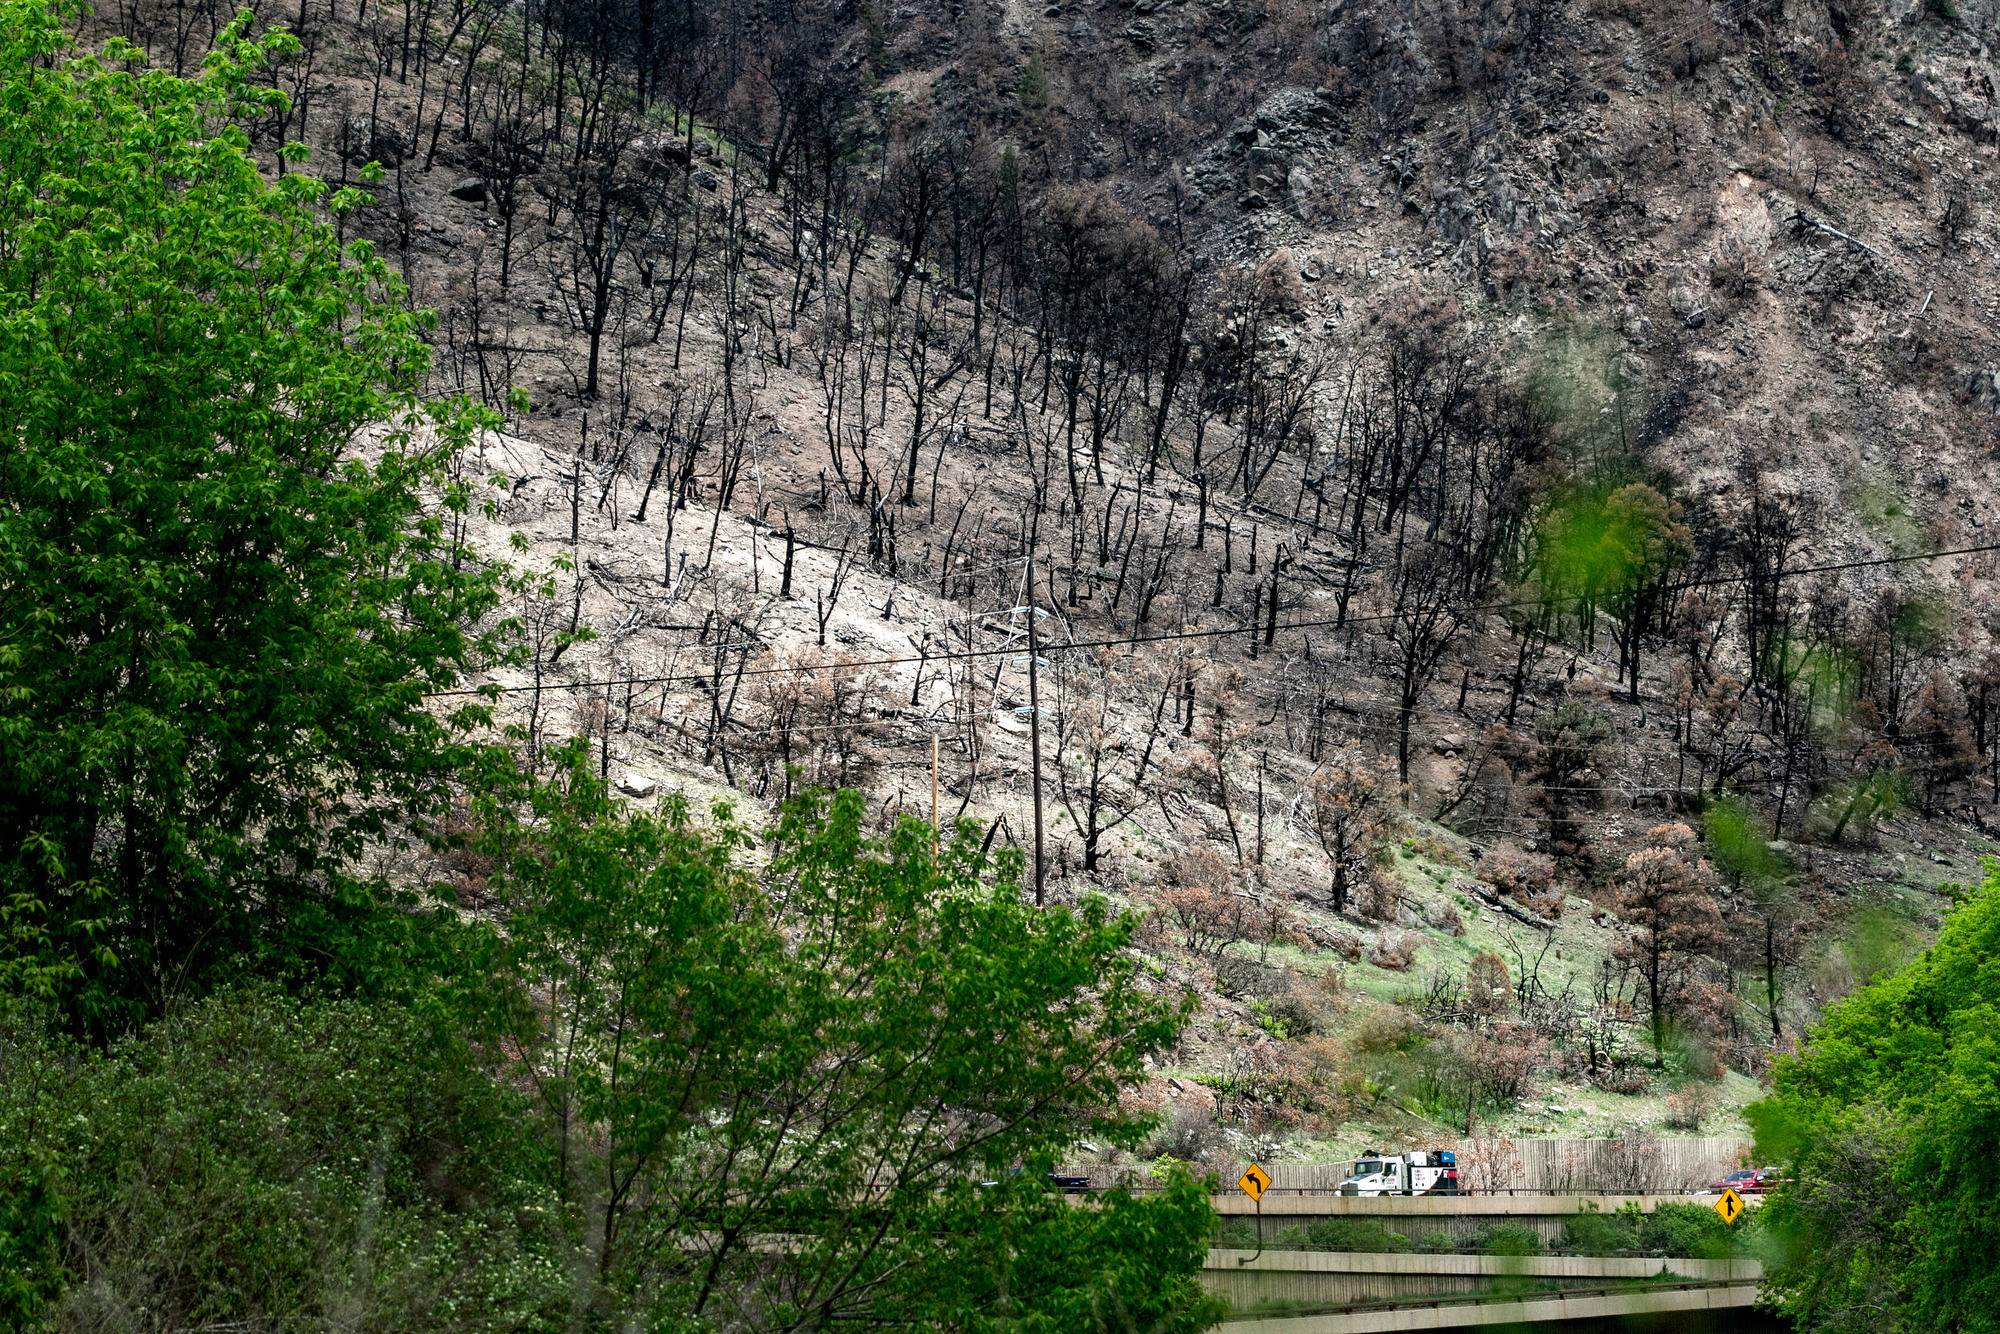 BURN-SCAR-GLENWOOD-CANYON-GRIZLY-FIRE